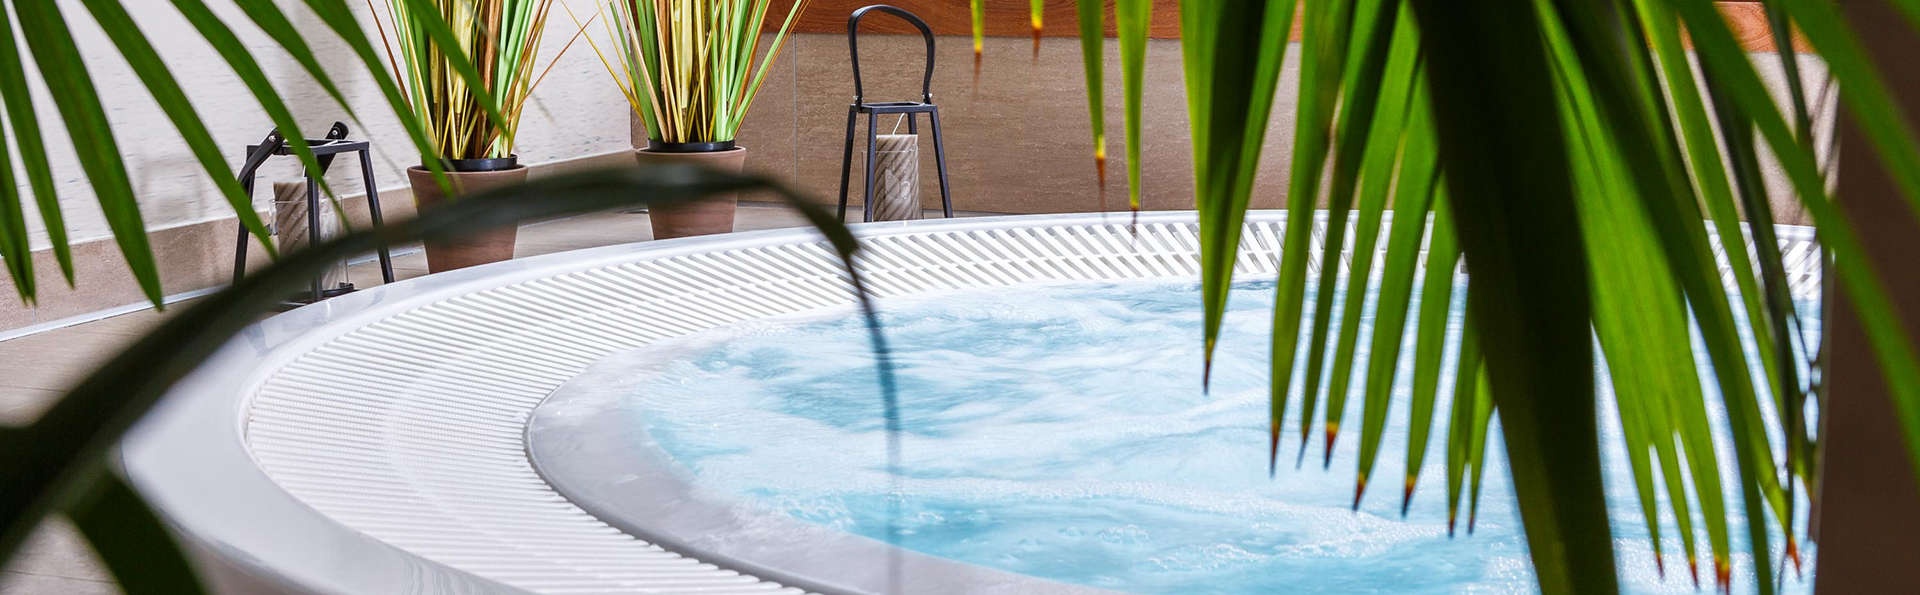 Best Western Les Bains Hotel et SPA  - EDIT_NEW_Relax.jpg